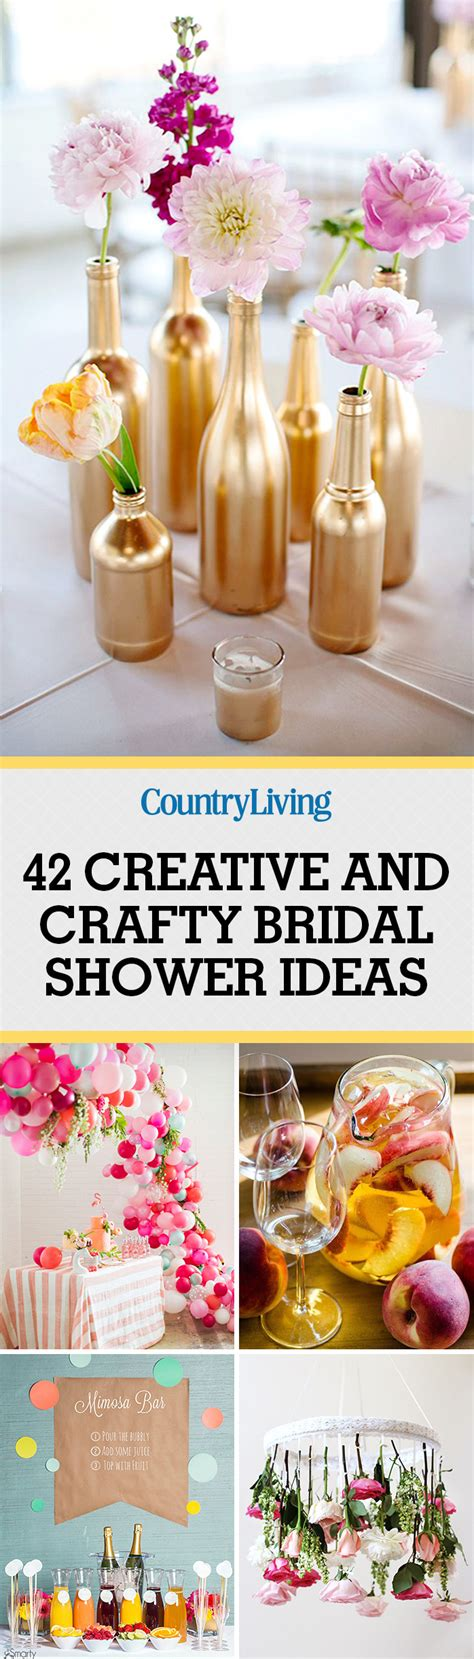 bridal shower easy ideas 50 best bridal shower ideas themes food and decorating ideas for wedding showers